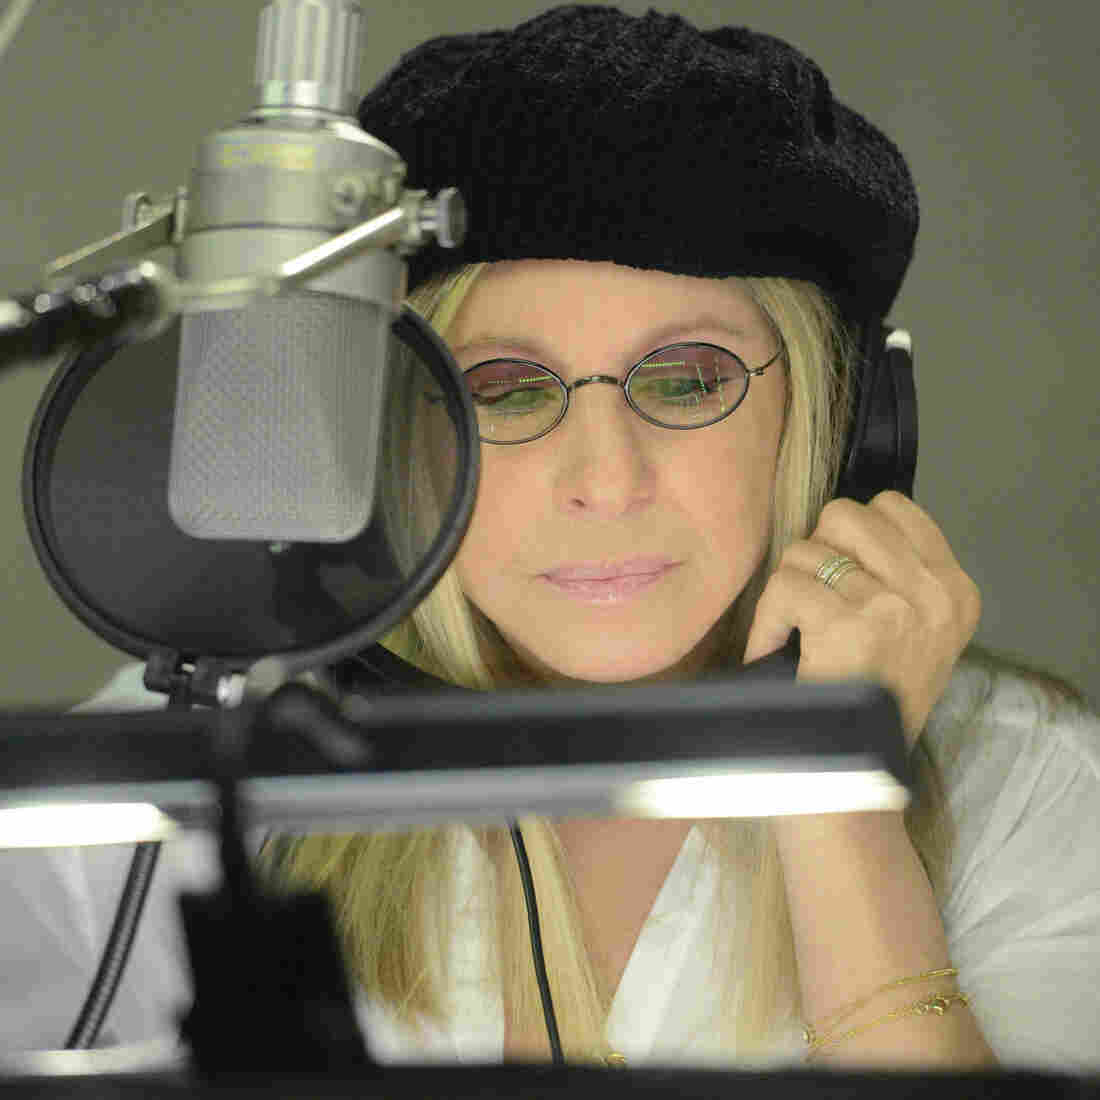 Barbra Streisand during a recording session in Burbank, Calif.